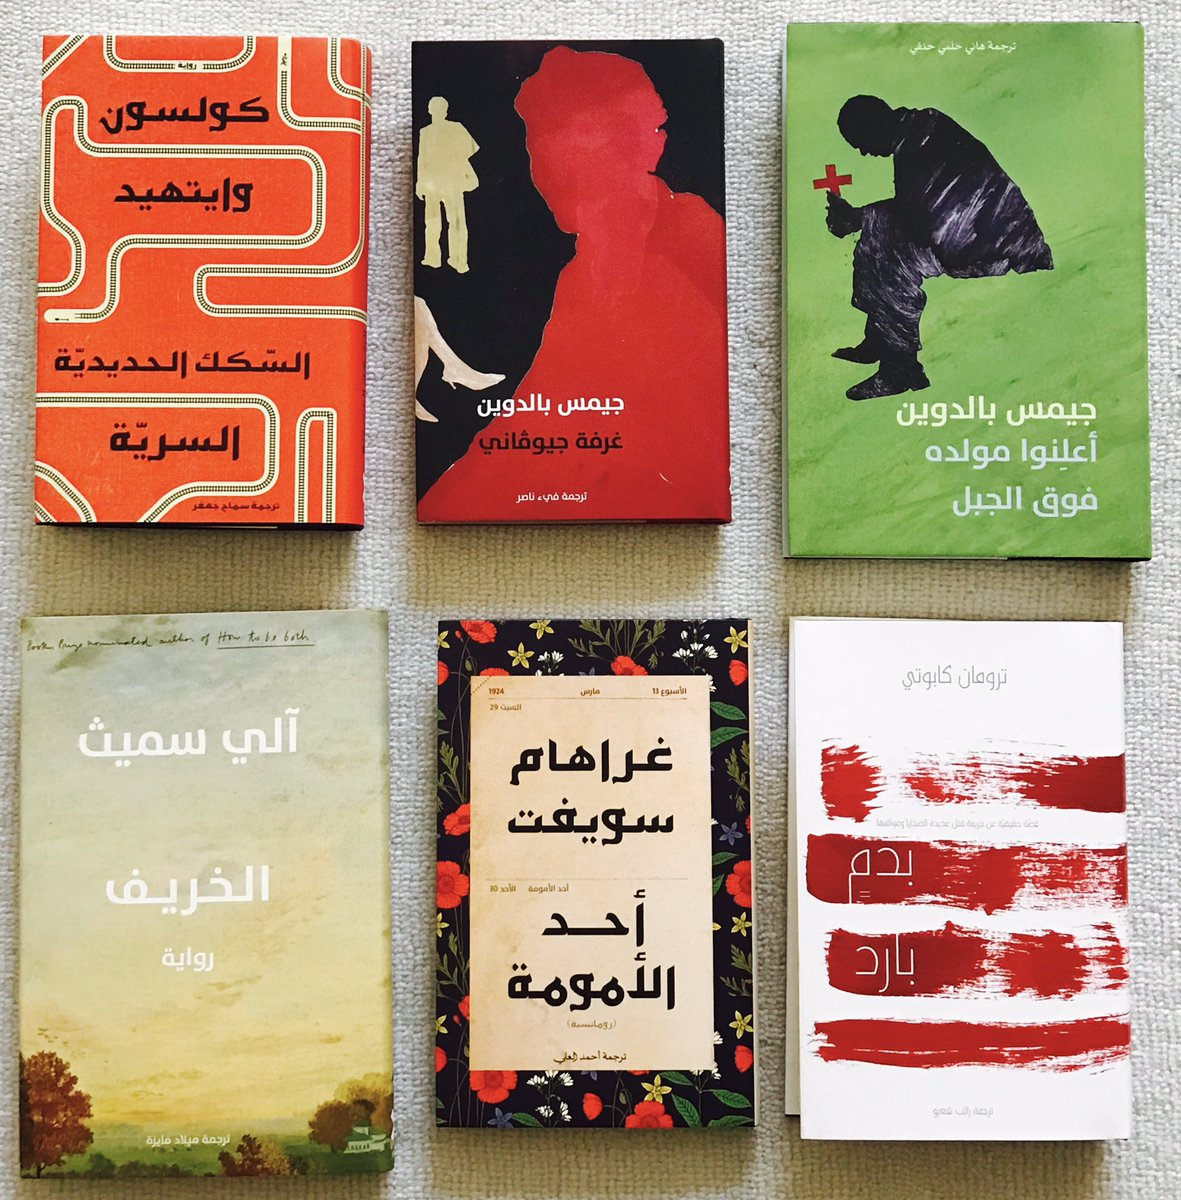 With 'Rewayat,' Sharjah Brings Key World Literature into Arabic, Including James Baldwin, Colson Whitehead